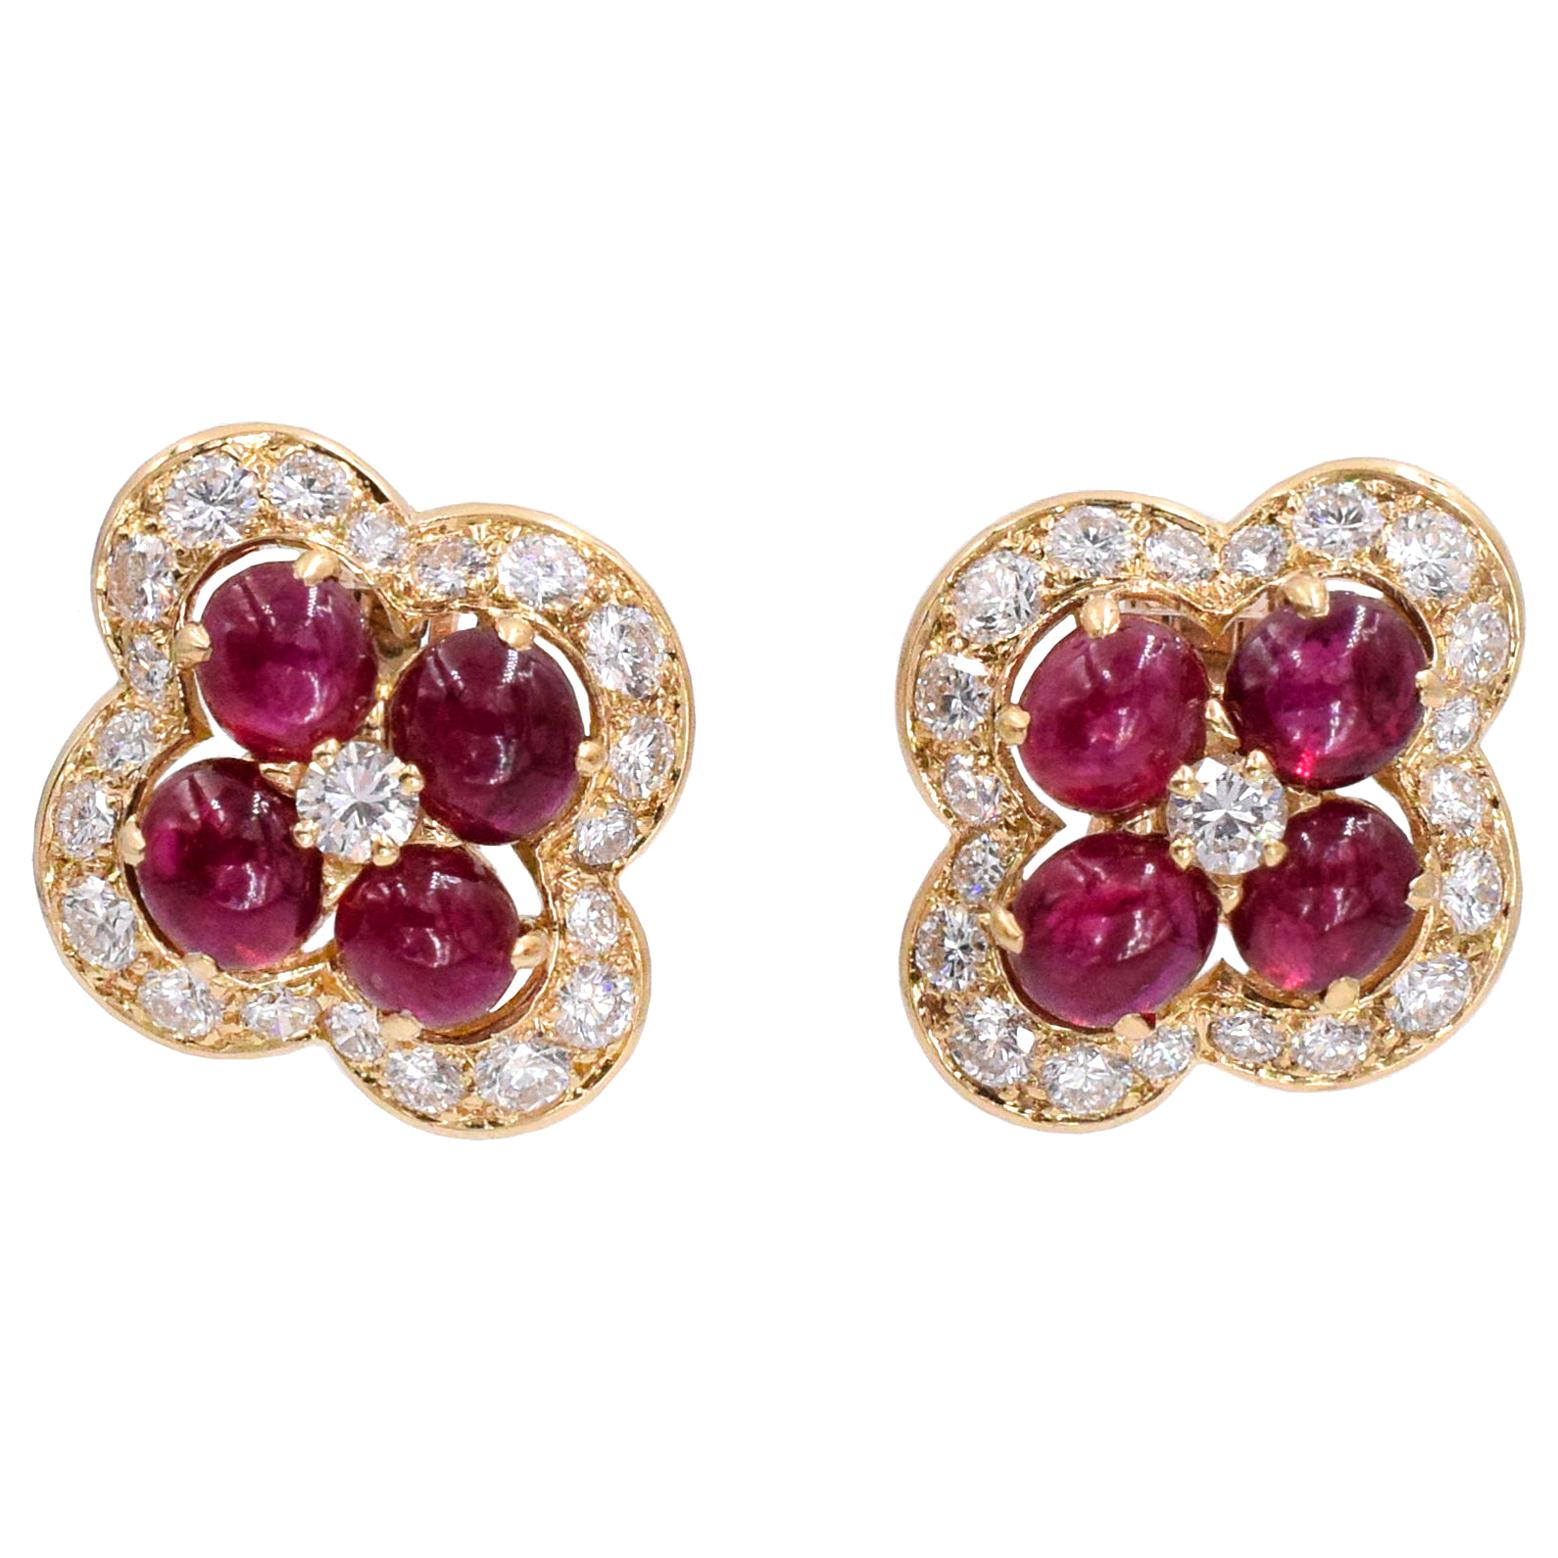 Cartier Ruby and Diamond Ear-Clips French